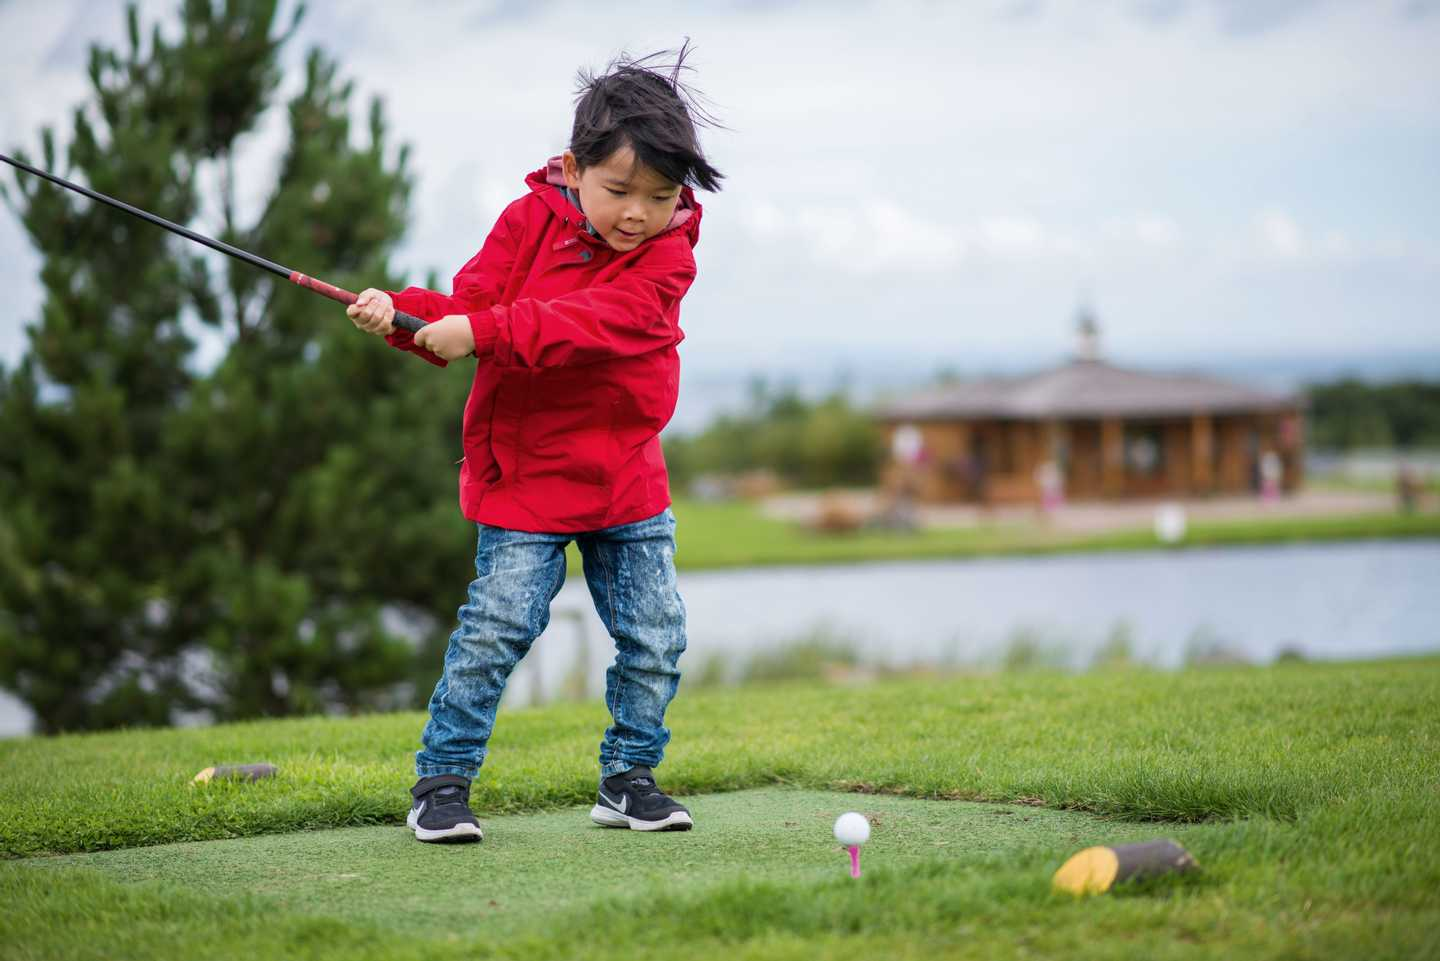 Child playing golf at 9-hole golf course